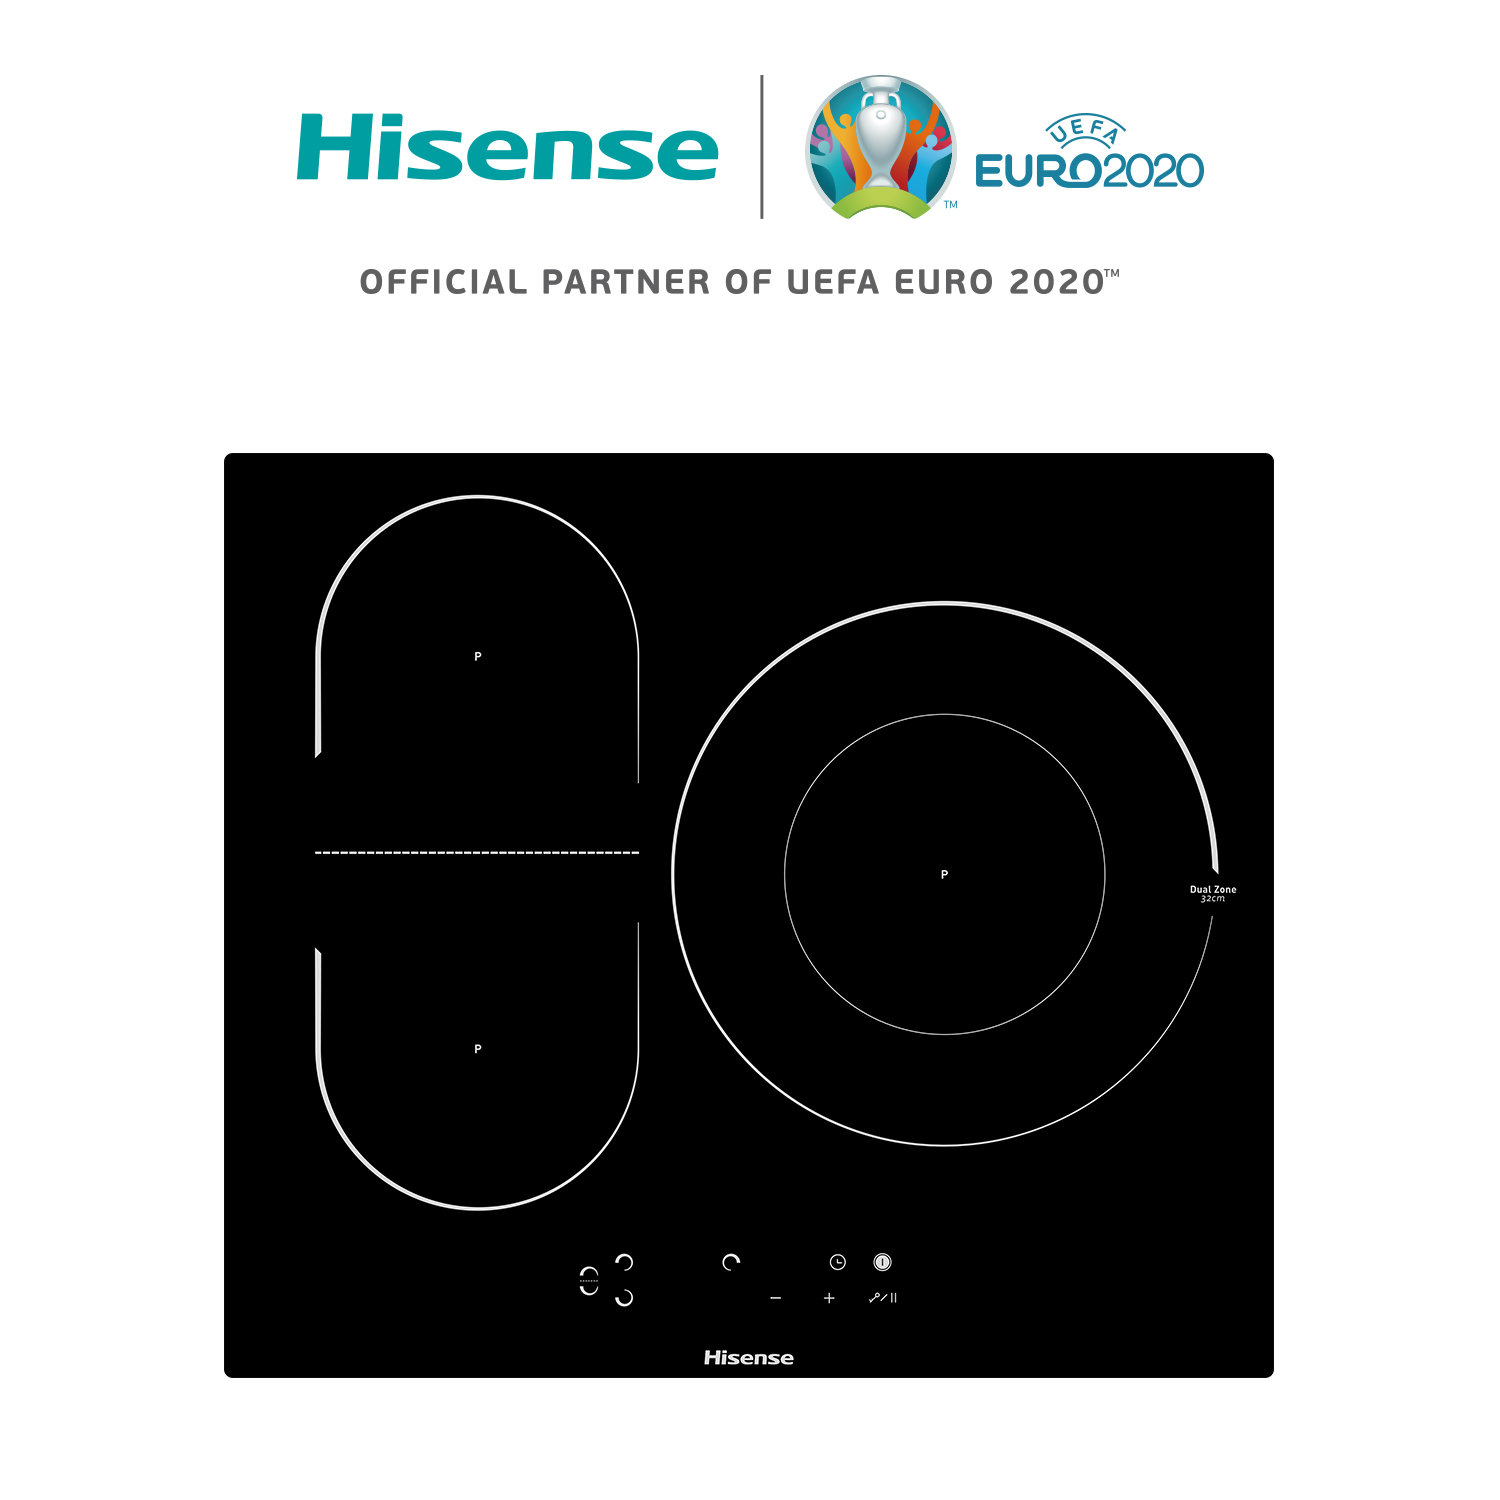 hisense-i6337c-induction-cooker-3-burners-7100w-safety-lock-touch-control-59-×-6-×-52-cm